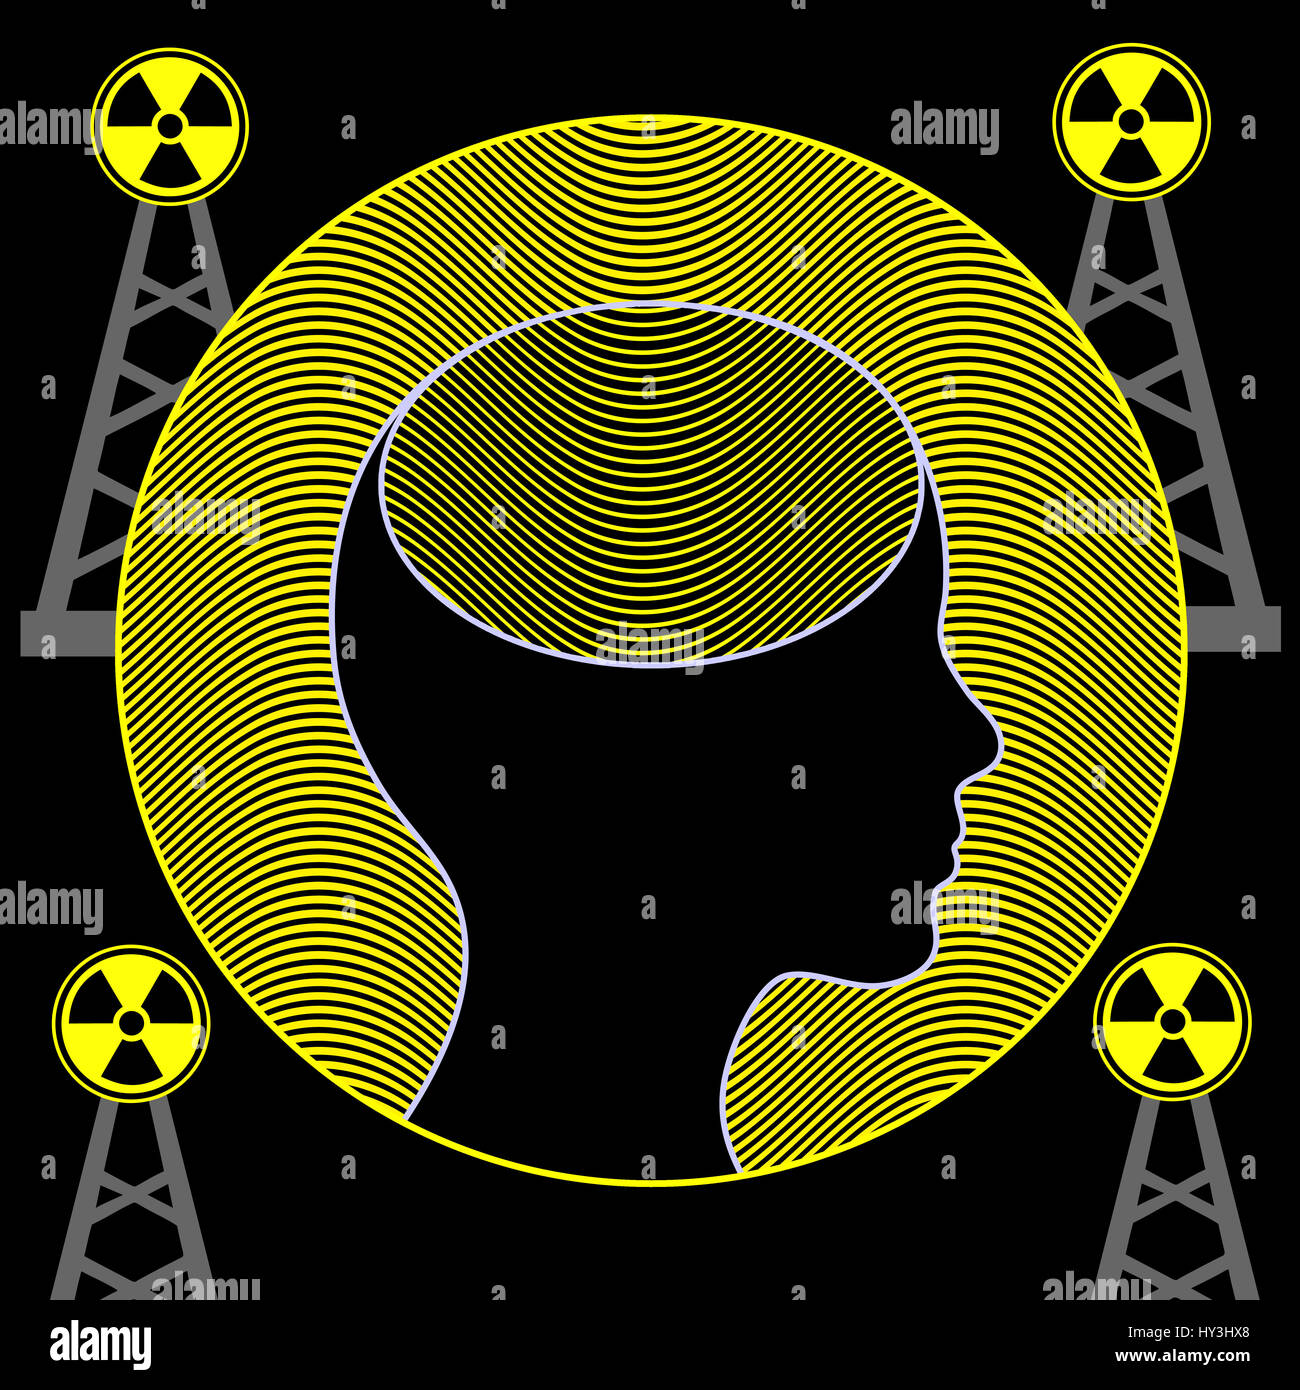 Electromagnetic waves of mobile towers influence the function of the brain - Stock Image